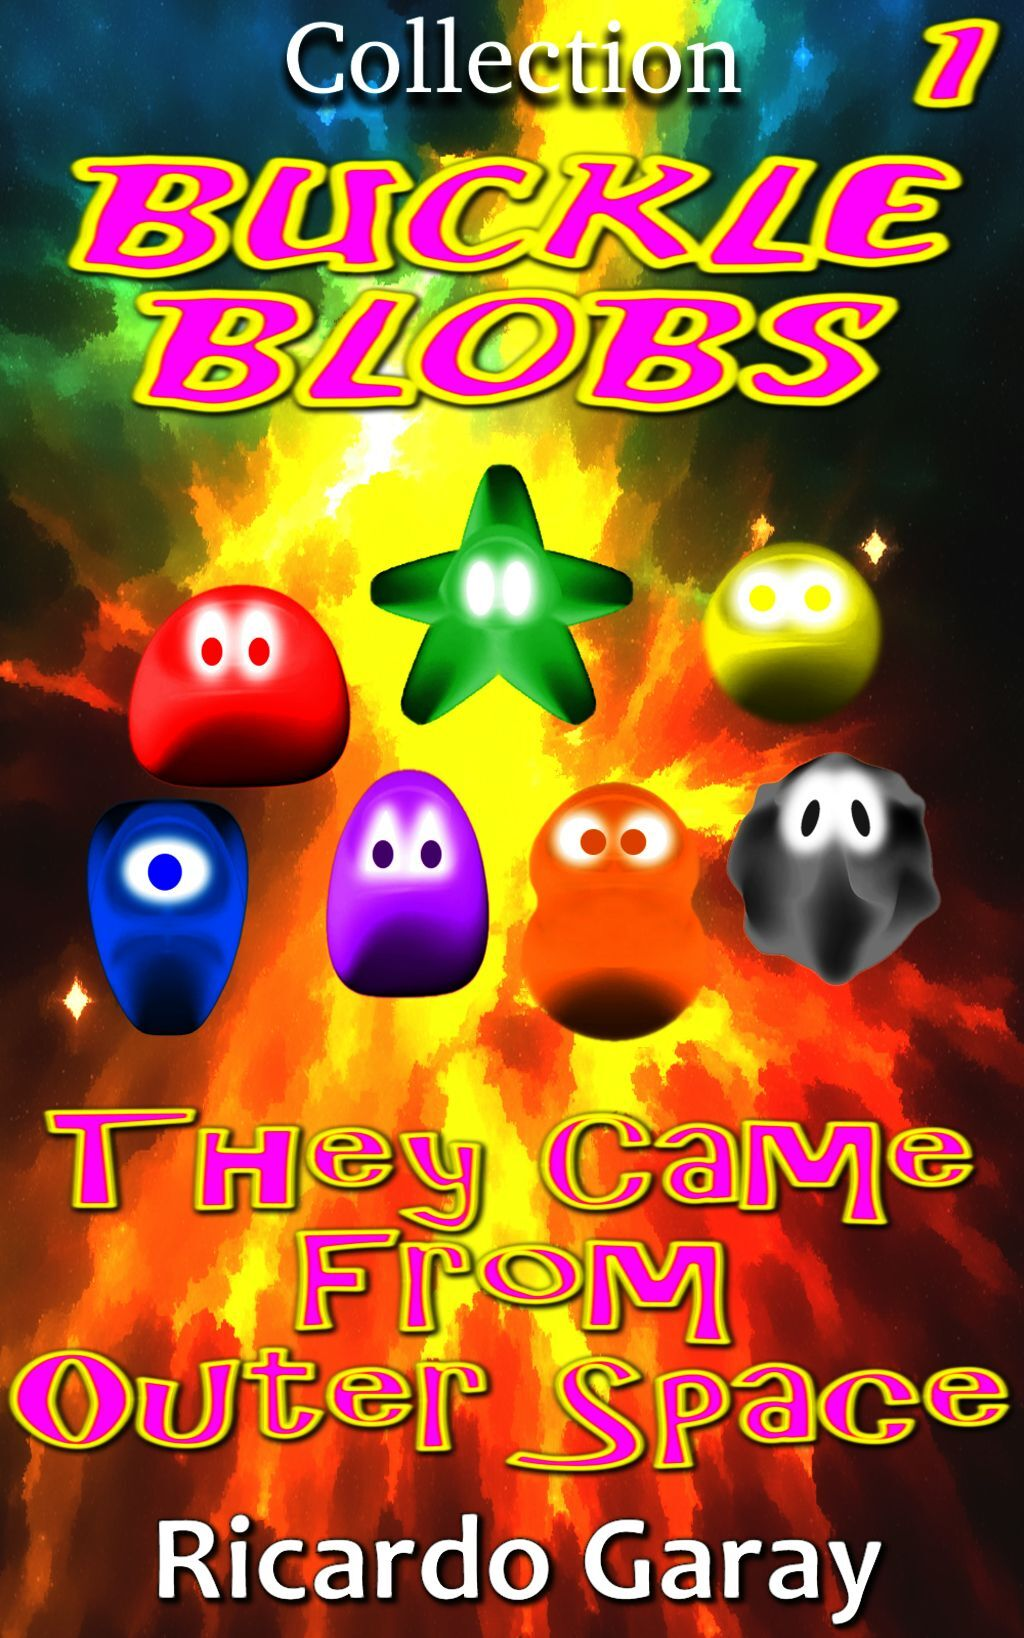 Buckle Blobs - They Came From Outer Space